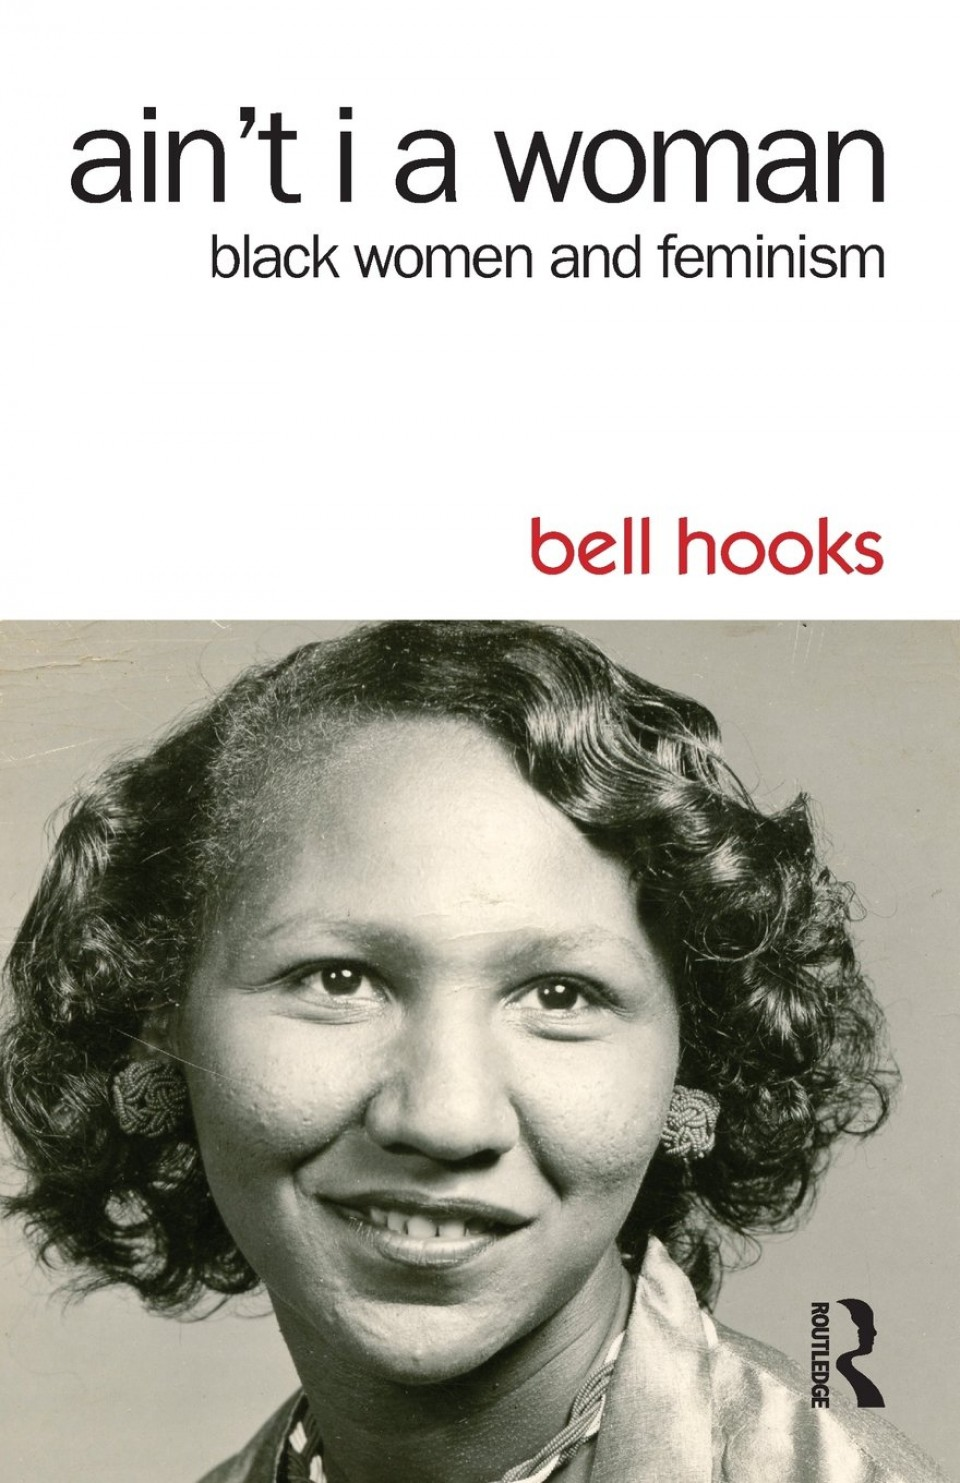 003 Essay Example 71kbnqfypdl Bell Hooks Best Essays Keeping Close To Home Feminism 960